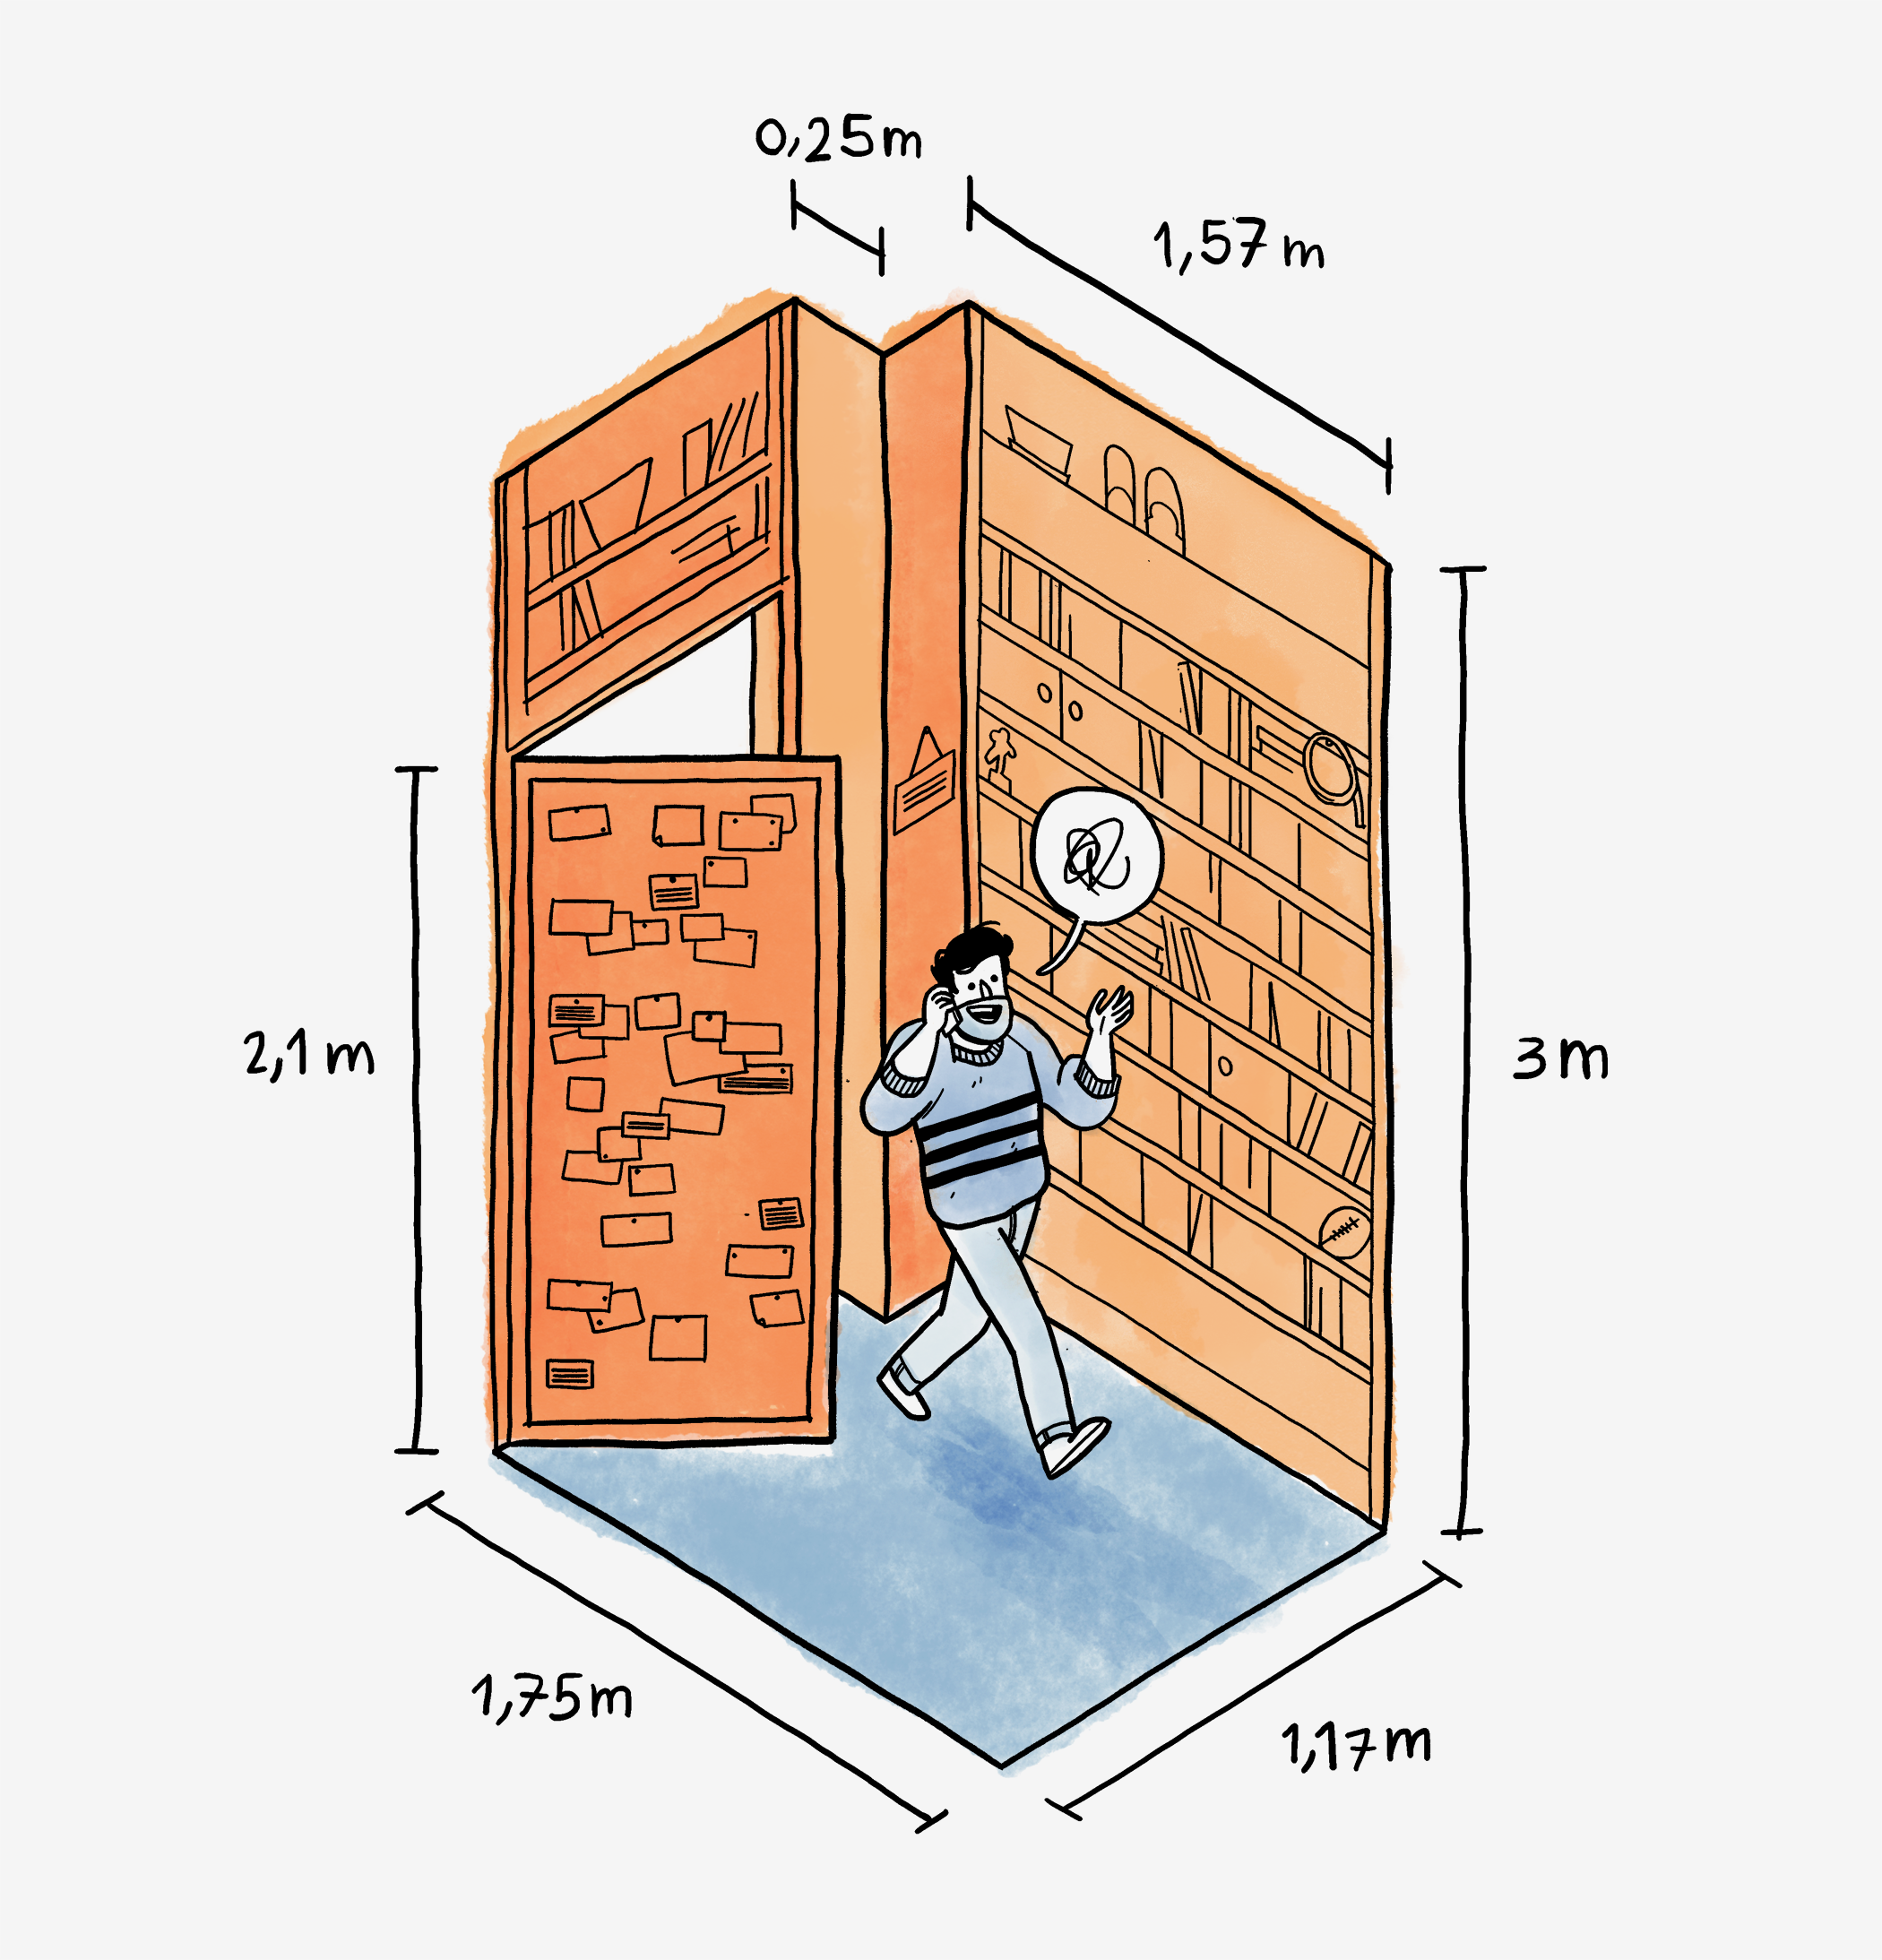 Viacom isometric illustration of phone room